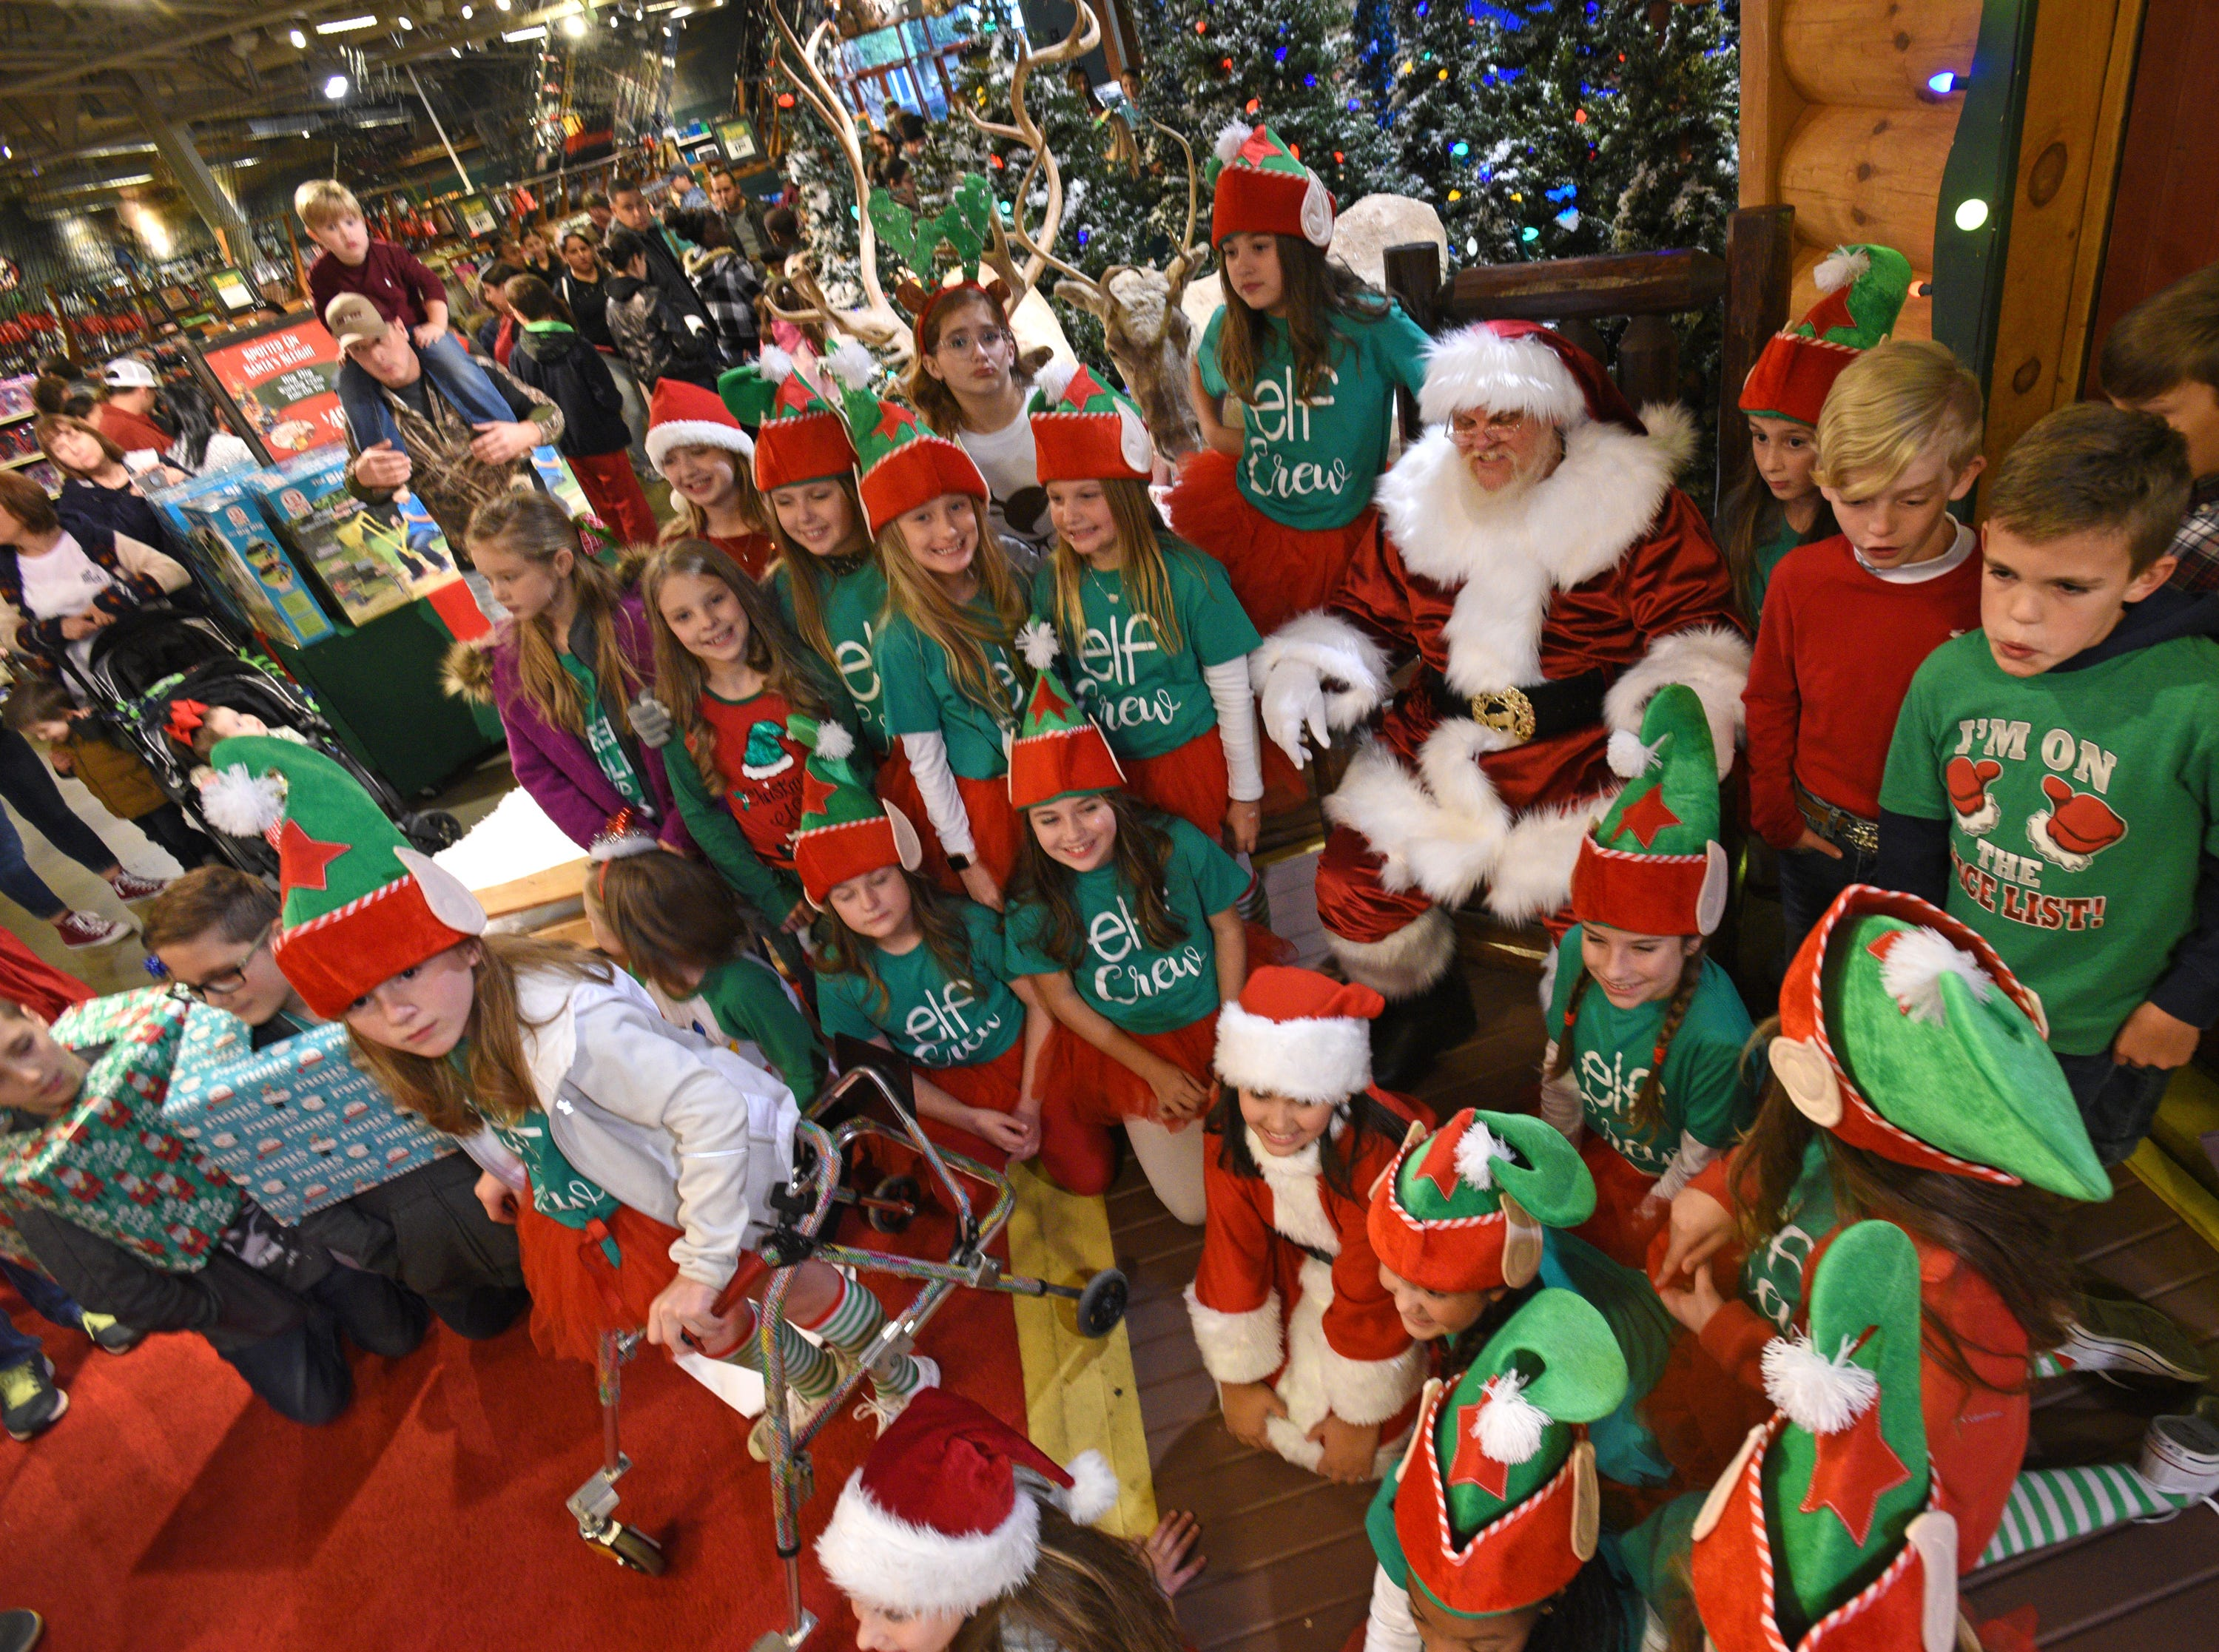 Santa poses for photos with good boys and girls in Wonderland after the Bass Pro Shops-Louisiana Boardwalk Outlets Santa Parade.